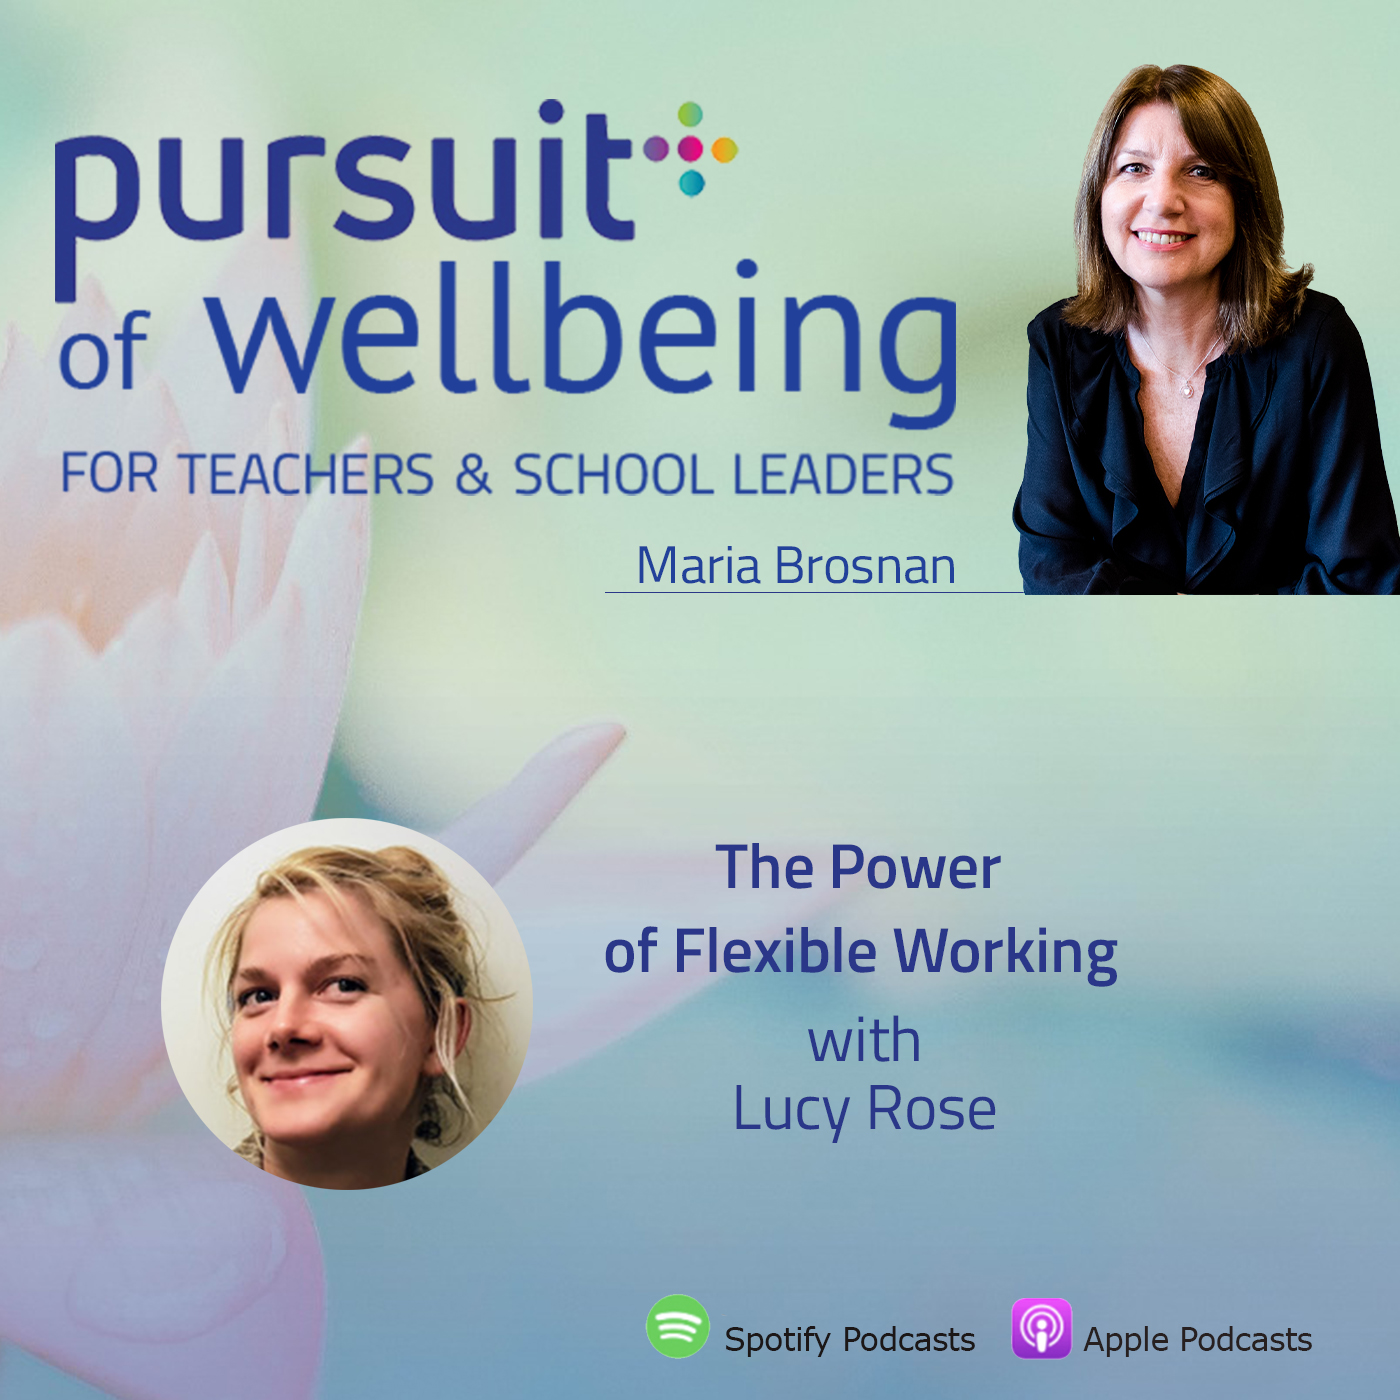 The Power of Flexible Working with Lucy Rose